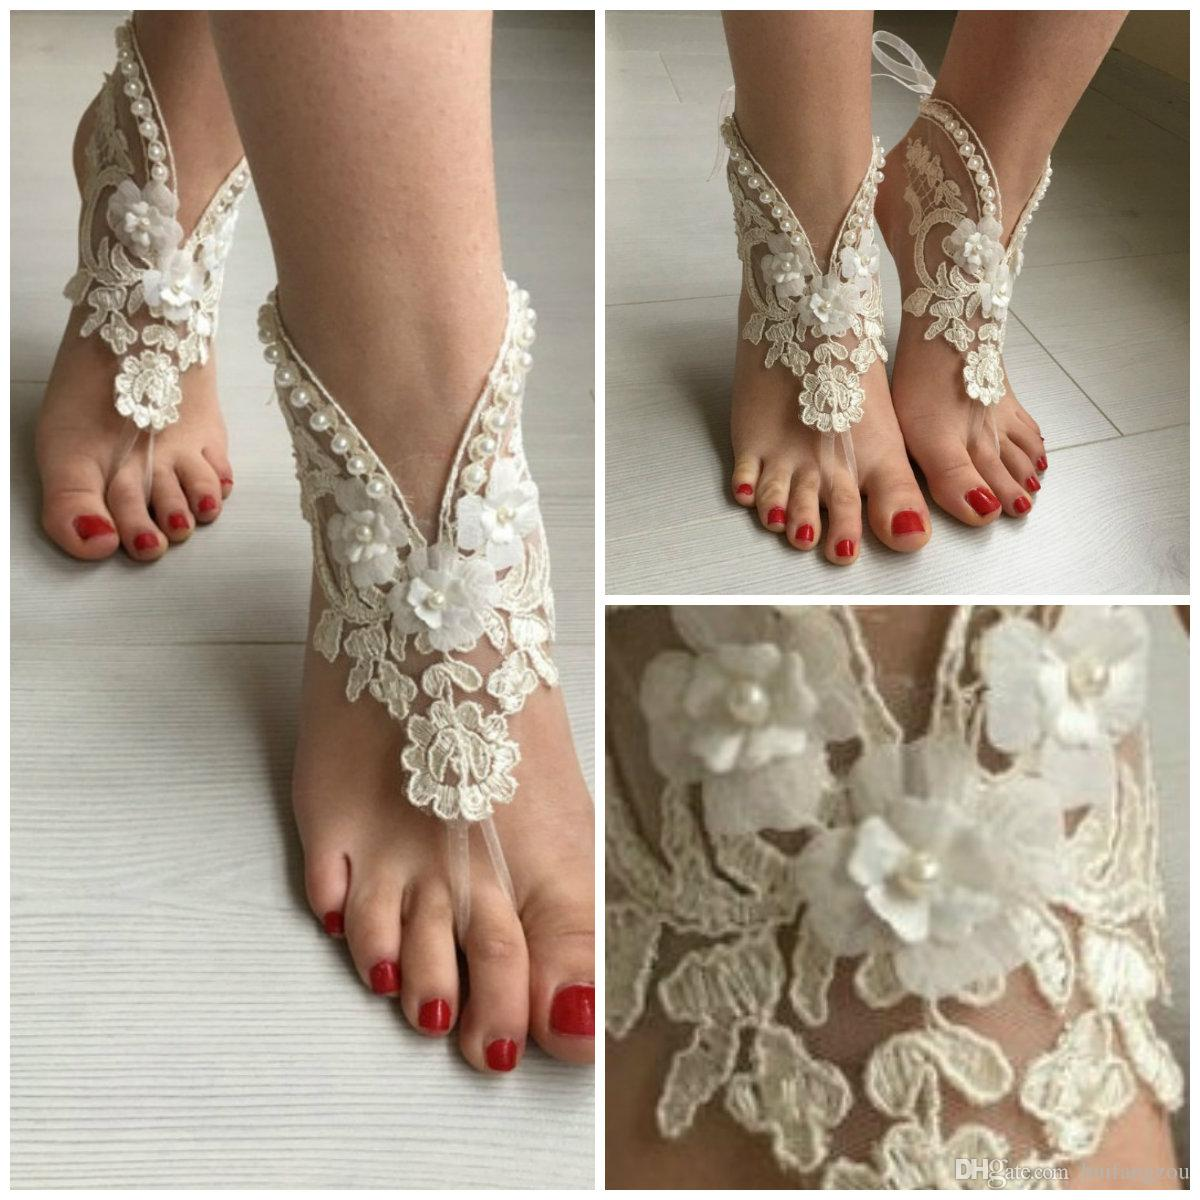 e7bdfbf469c45 Summer Beach Wedding Ankle Bracelets Stretch Imitation Pearl Lace Applique  Anklet Chain Fashion Bridal Foot Jewelry